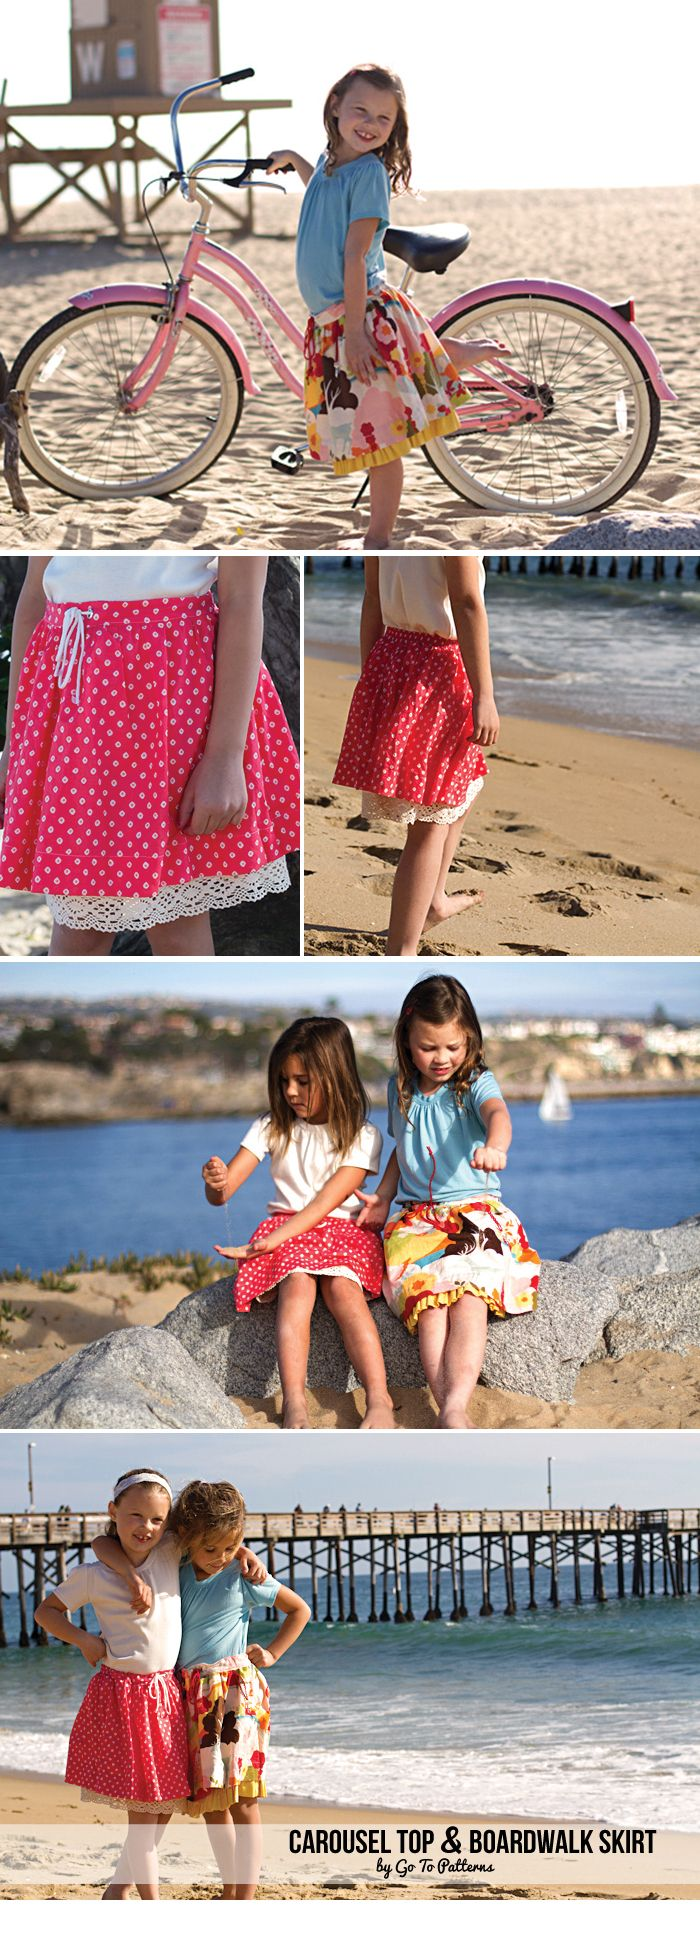 147 best sewing {skirt} images on Pinterest | Sewing patterns, Skirt ...